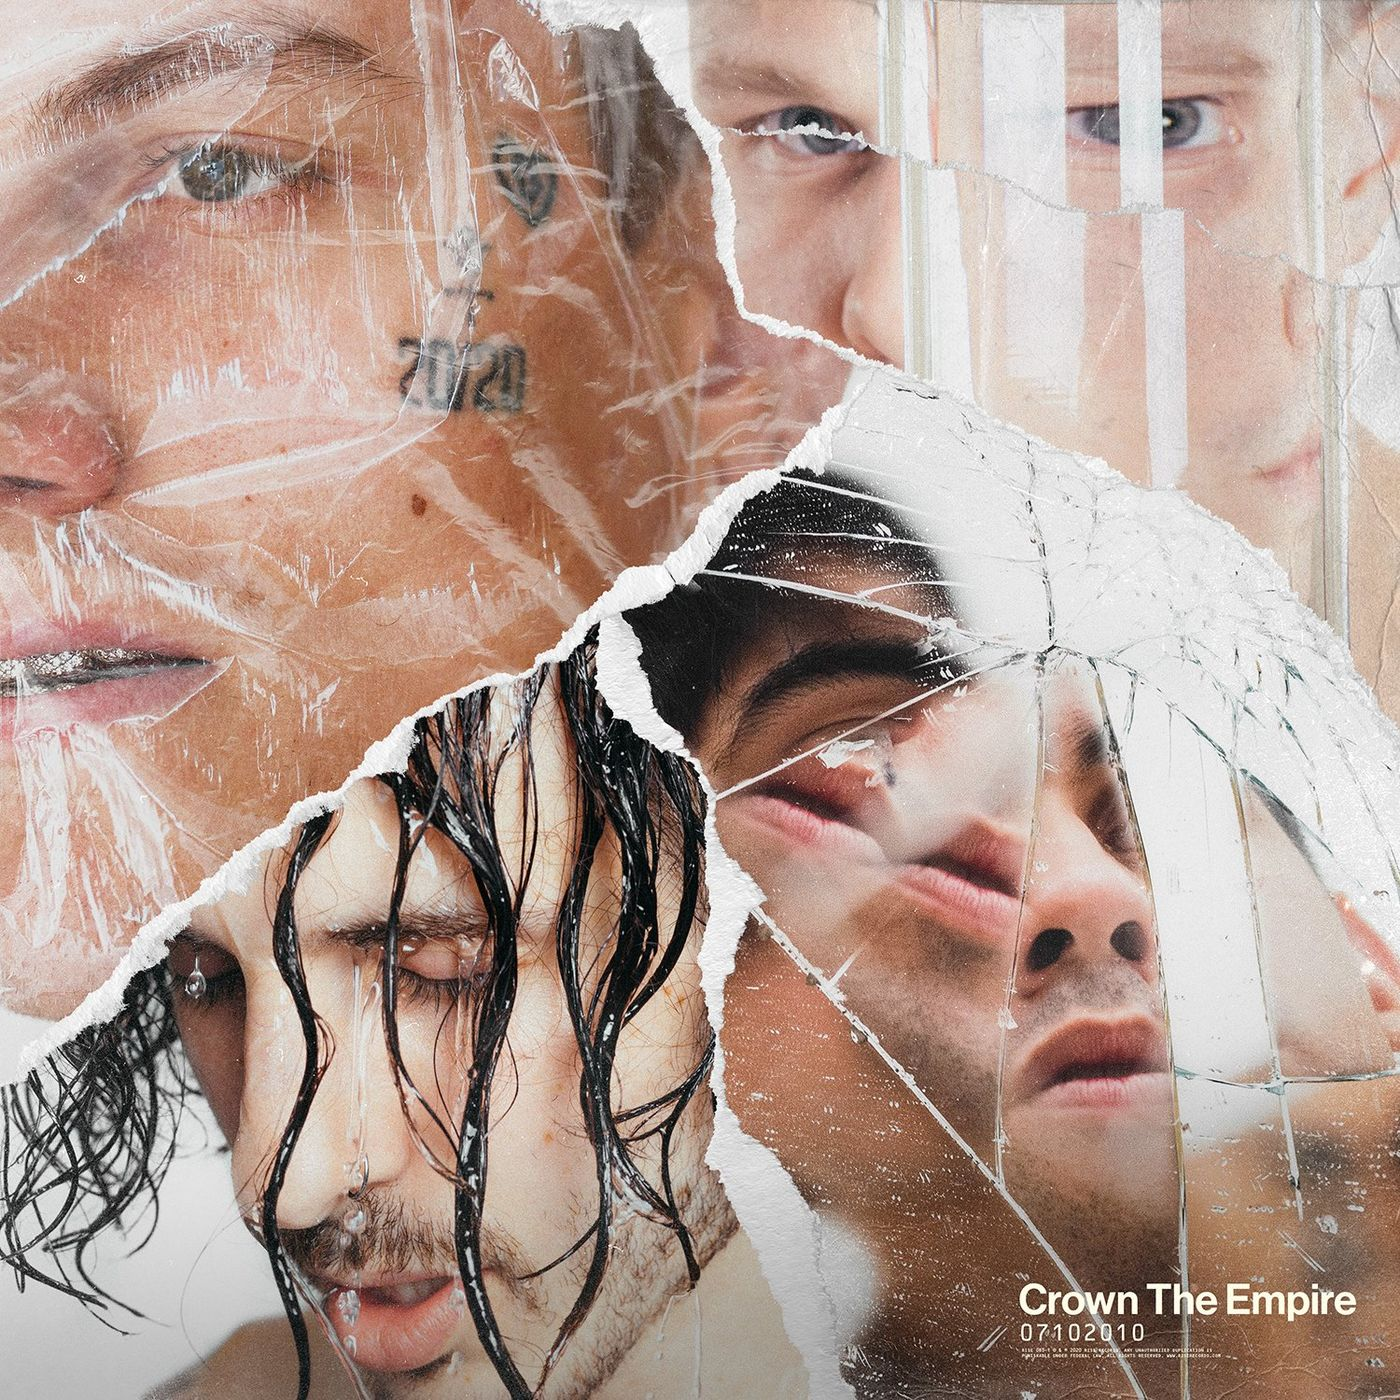 Crown The Empire - 07102010 (2020)